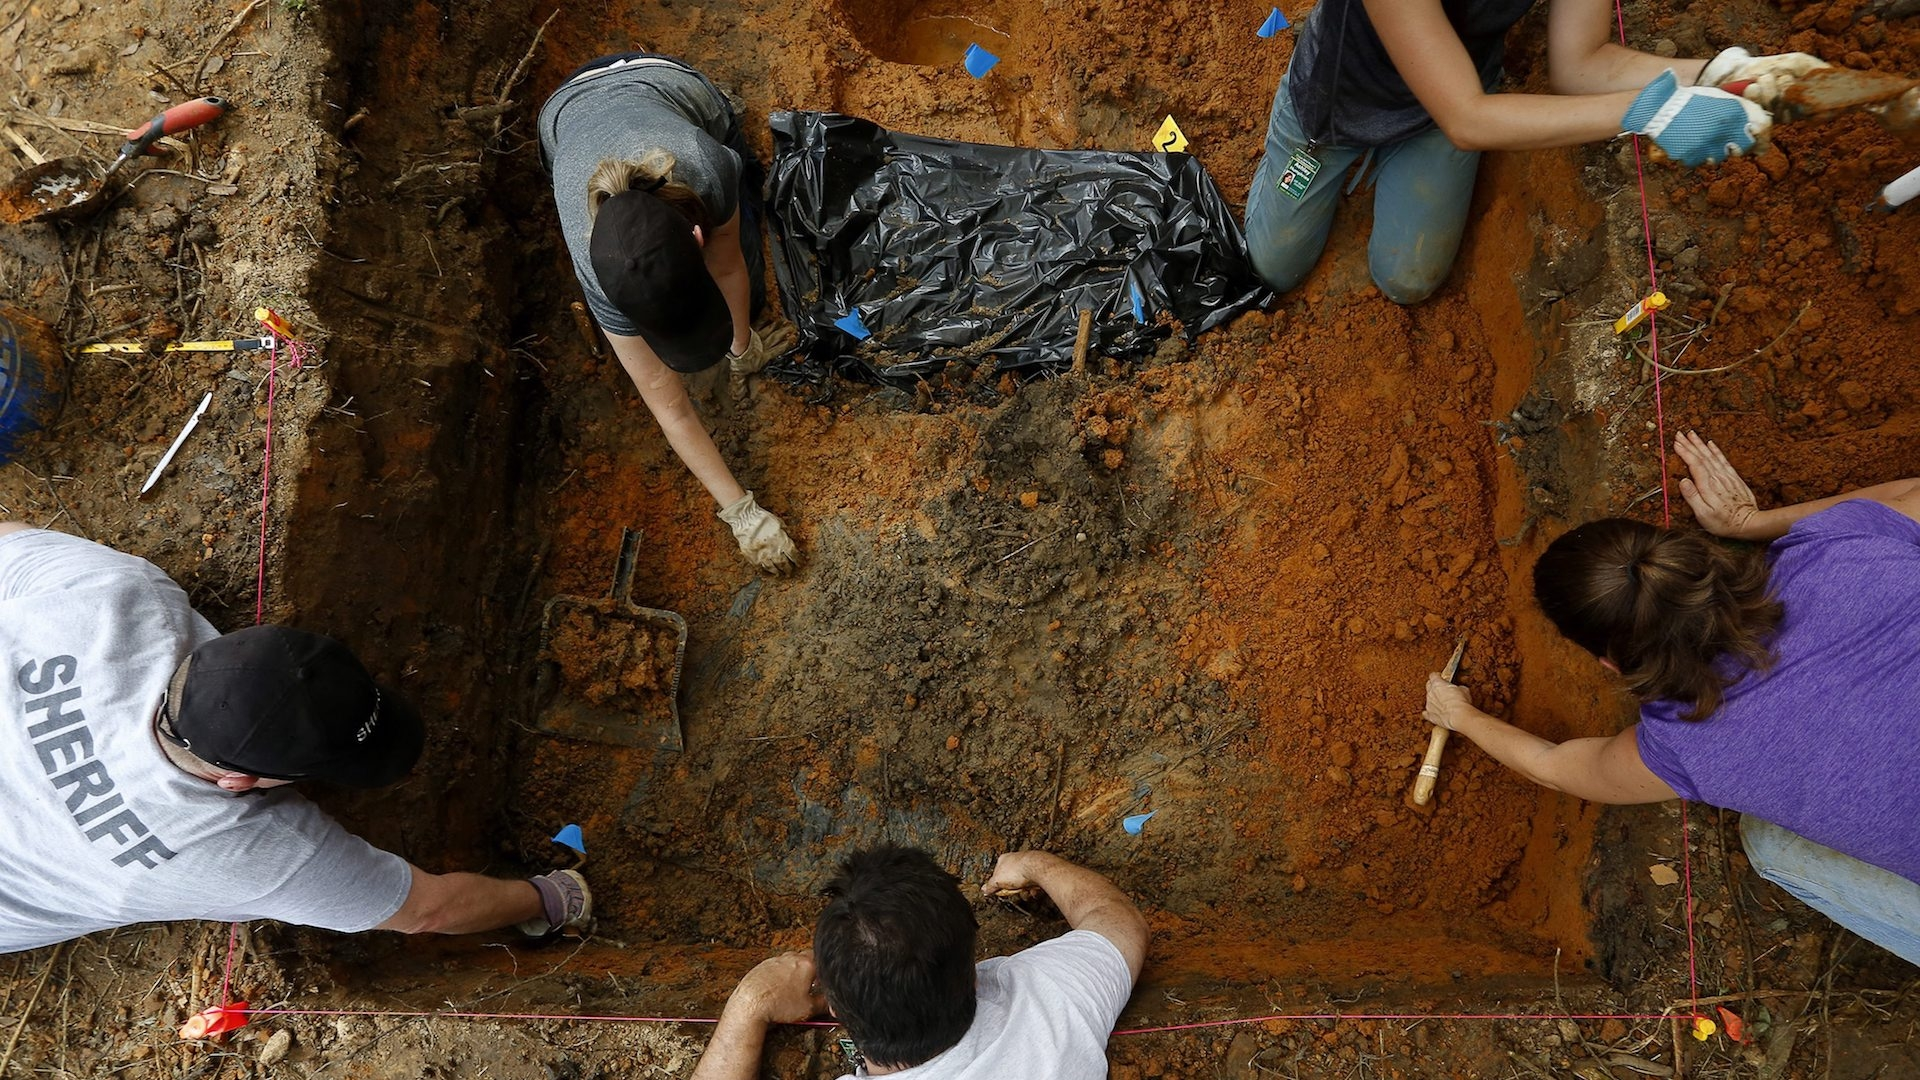 27 possible graves have been discovered at a reform school with a history of brutality